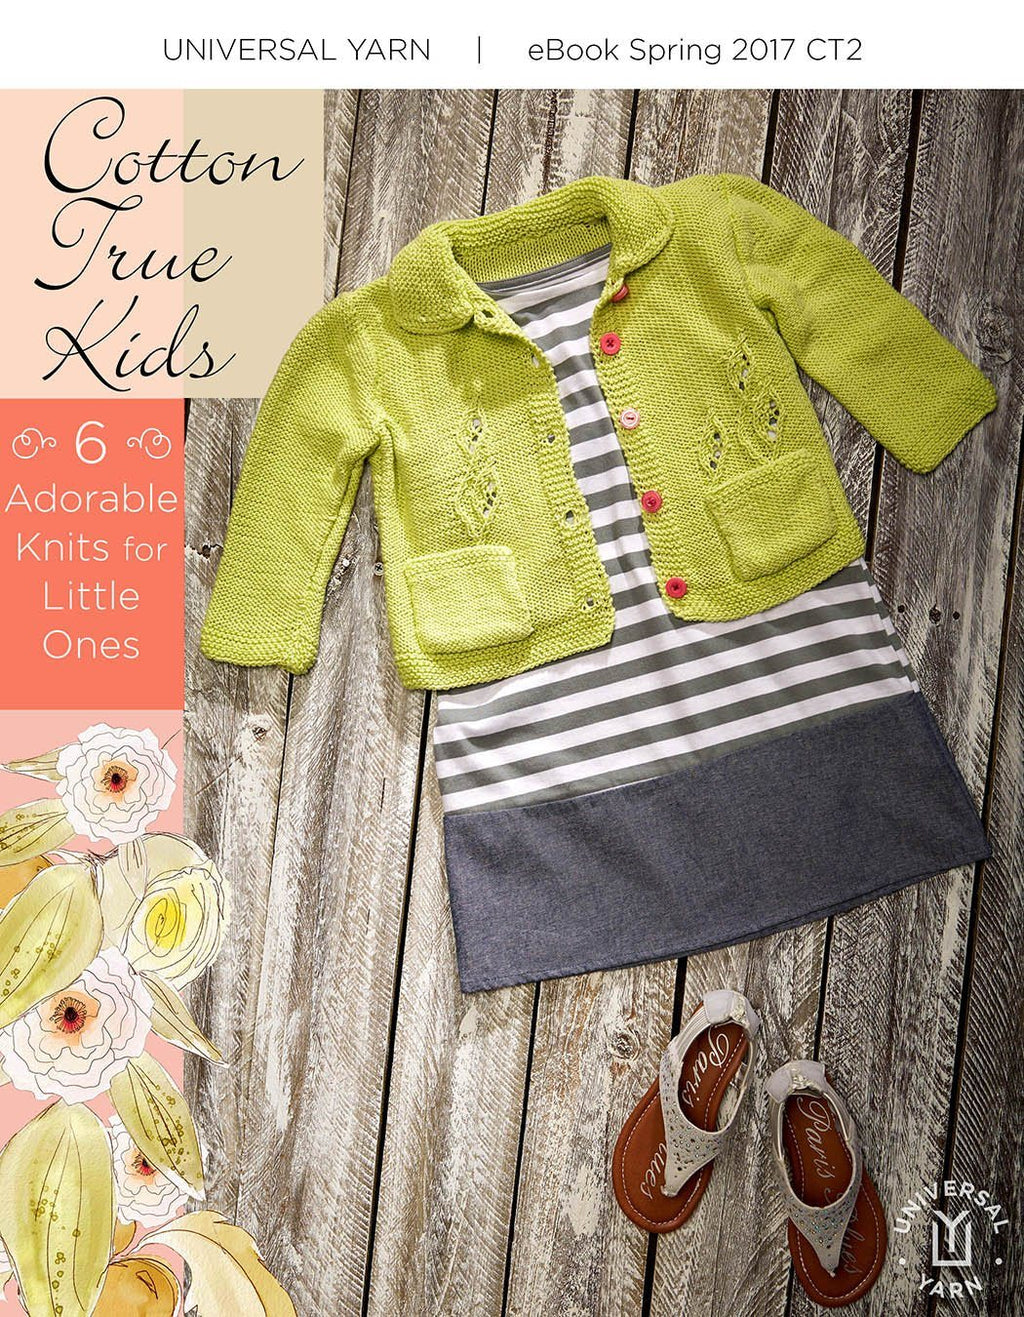 Cotton True Kids Pattern Fibra Natura